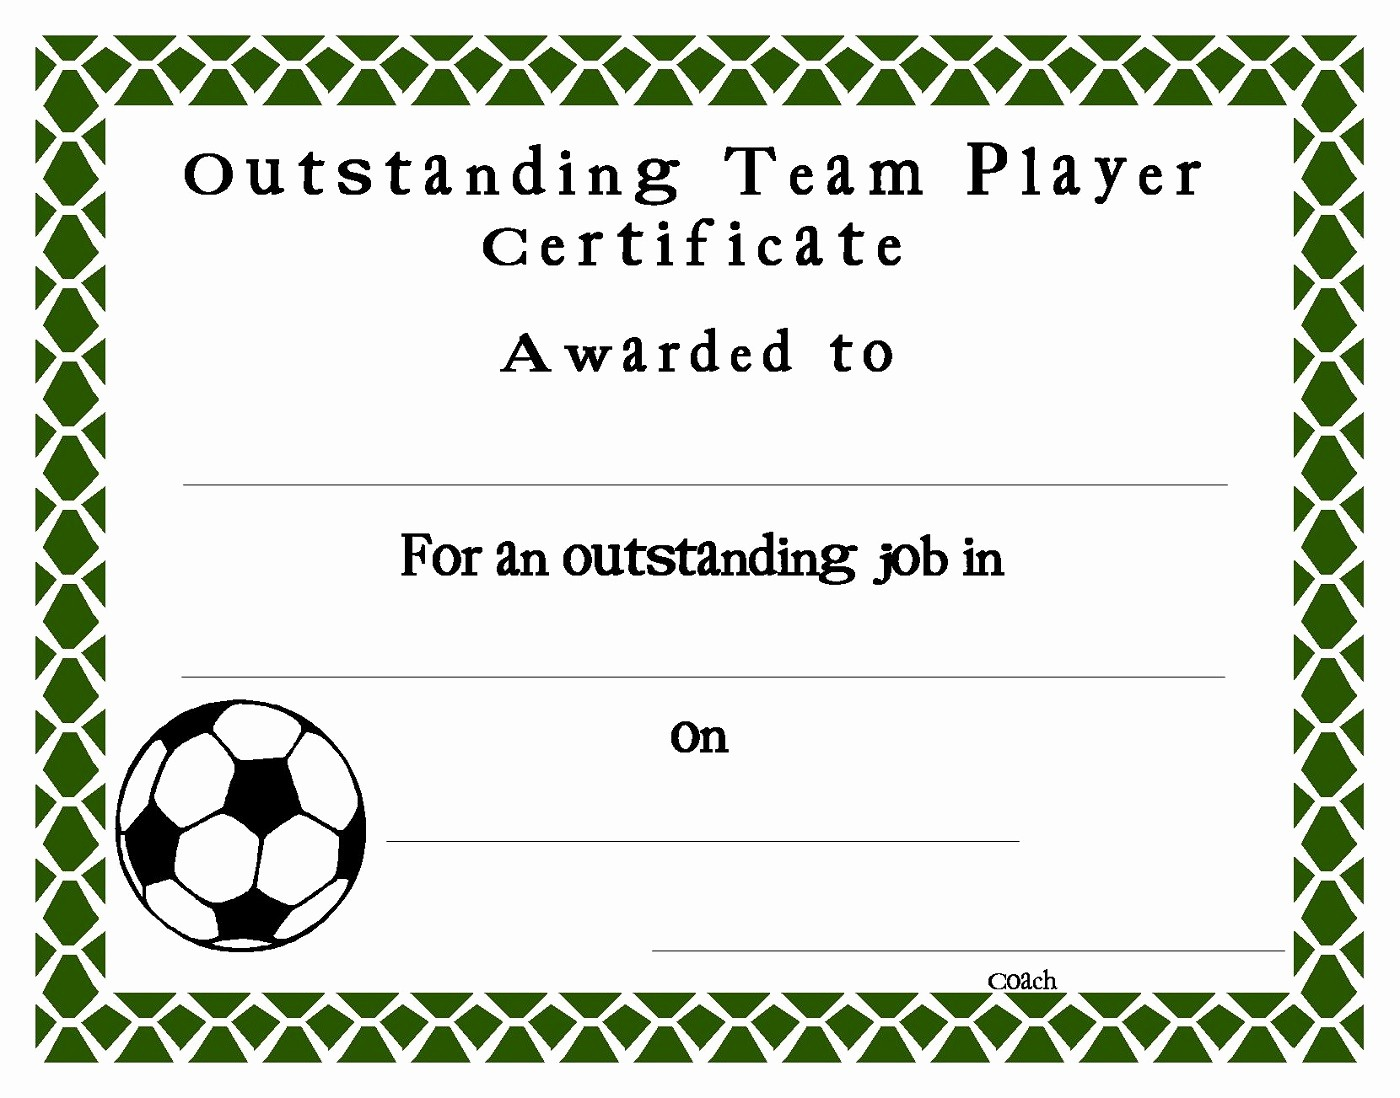 Free softball Certificates to Print Inspirational soccer Certificate Templates Printable